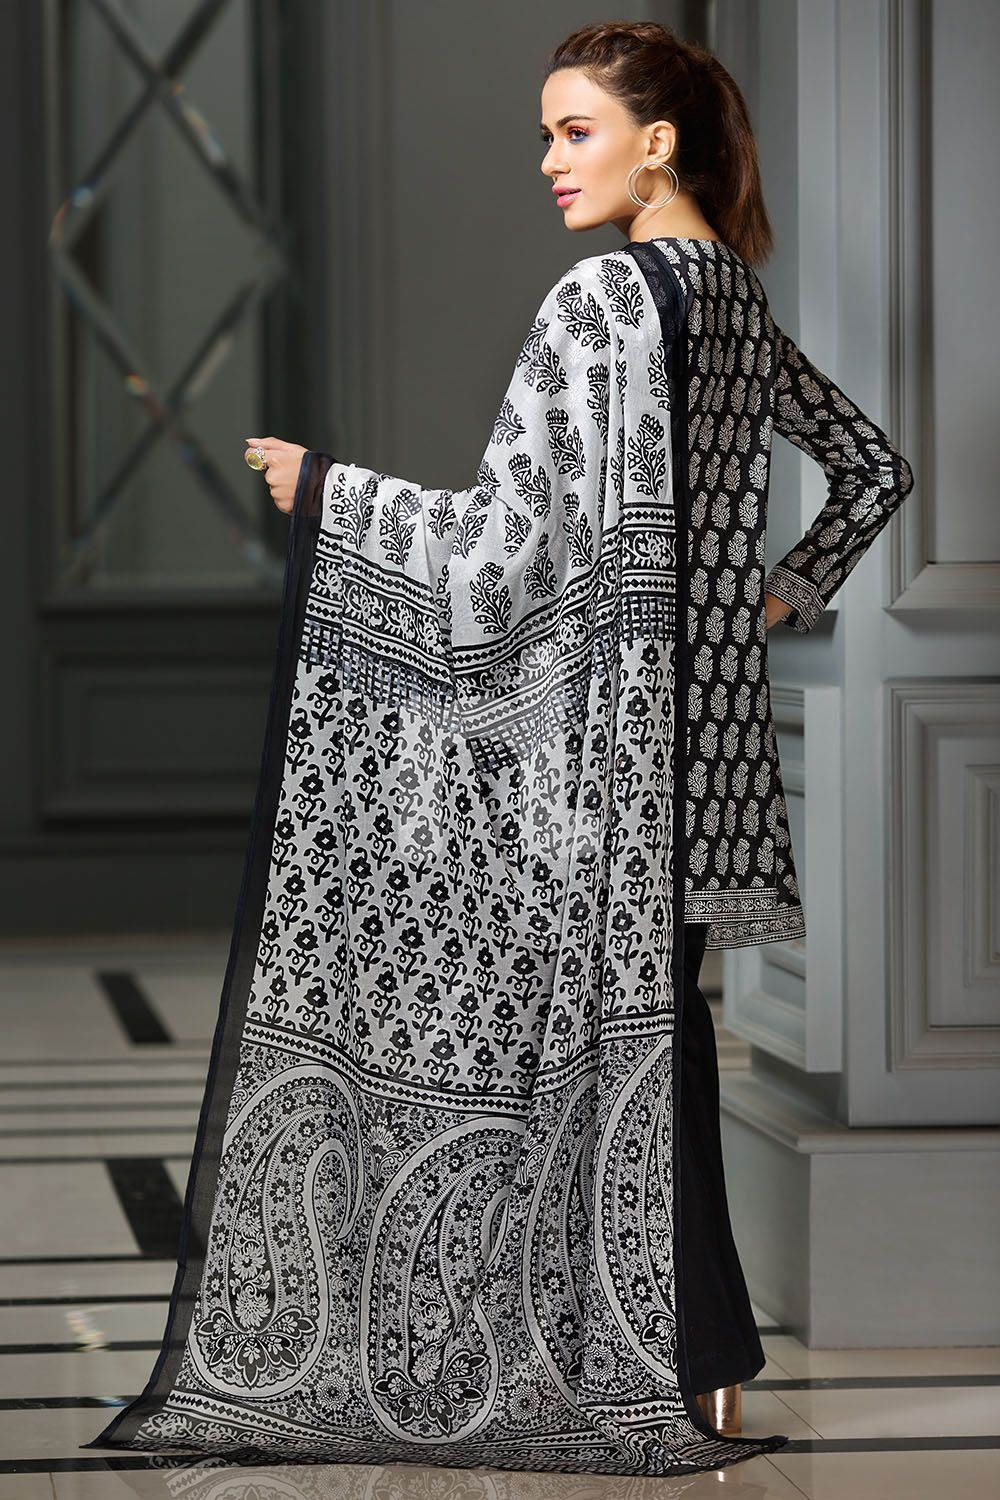 cdde6a7afe5 Bold and elegant black colored three piece unstitched lawn dress by Nishat  Linen Printed dresses collection 2018 wintercollection  blackfriday   readytowear ...